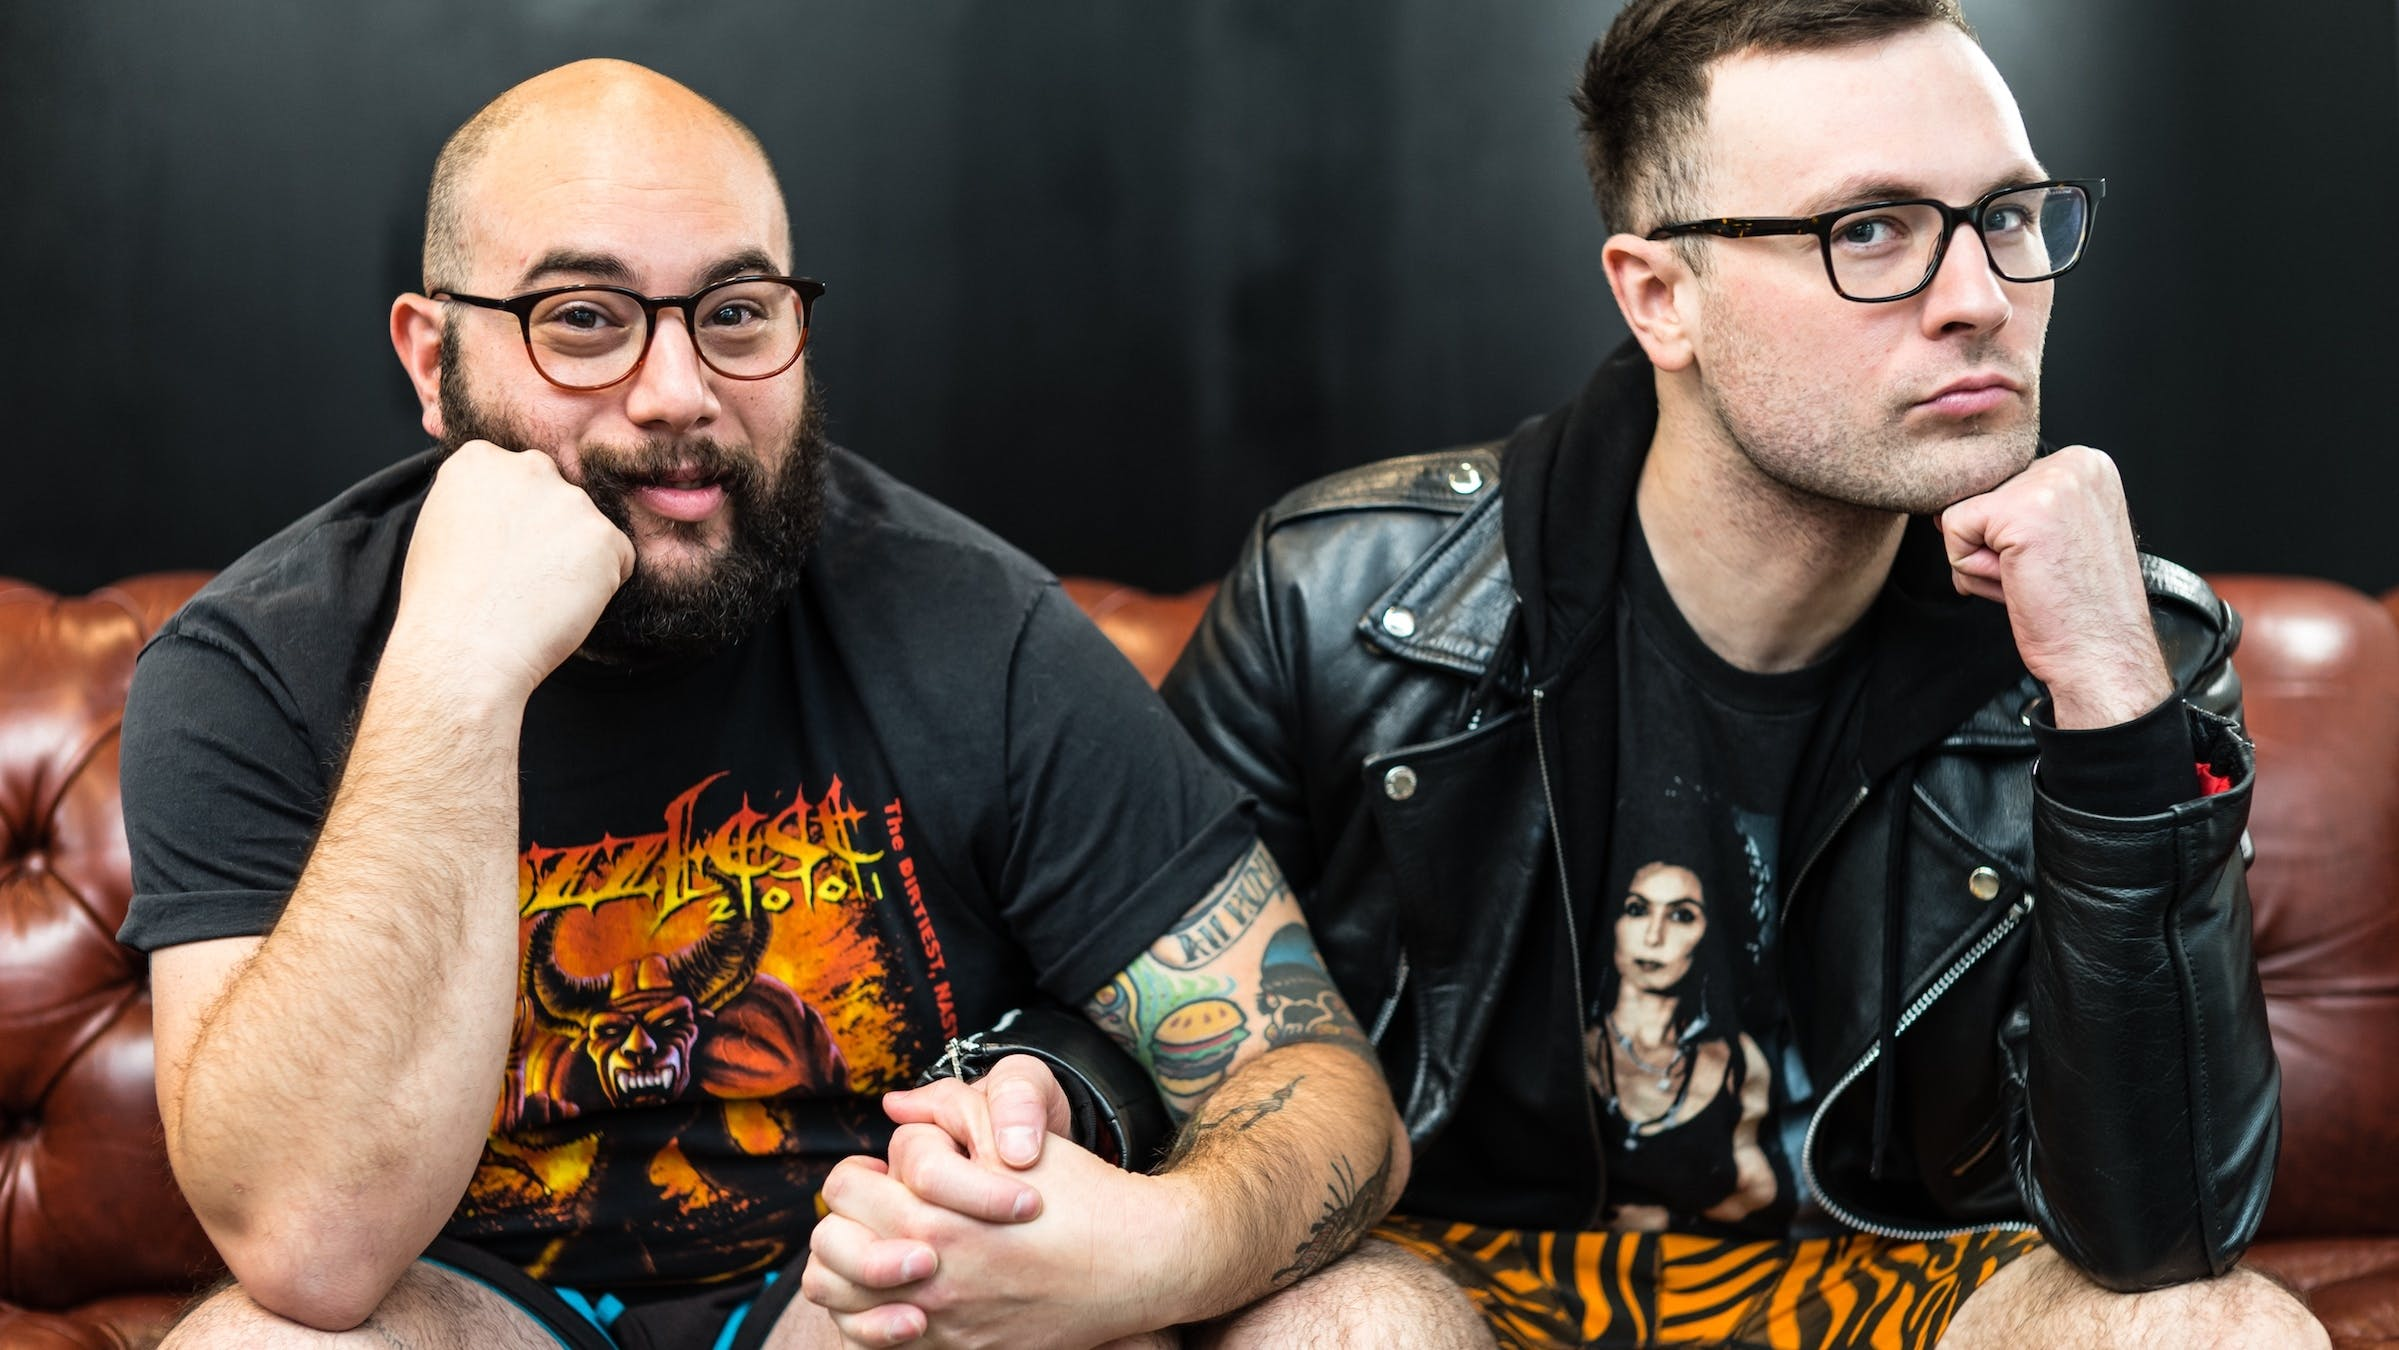 Meet The Guys Behind Metal's Most Hilarious Talk Show